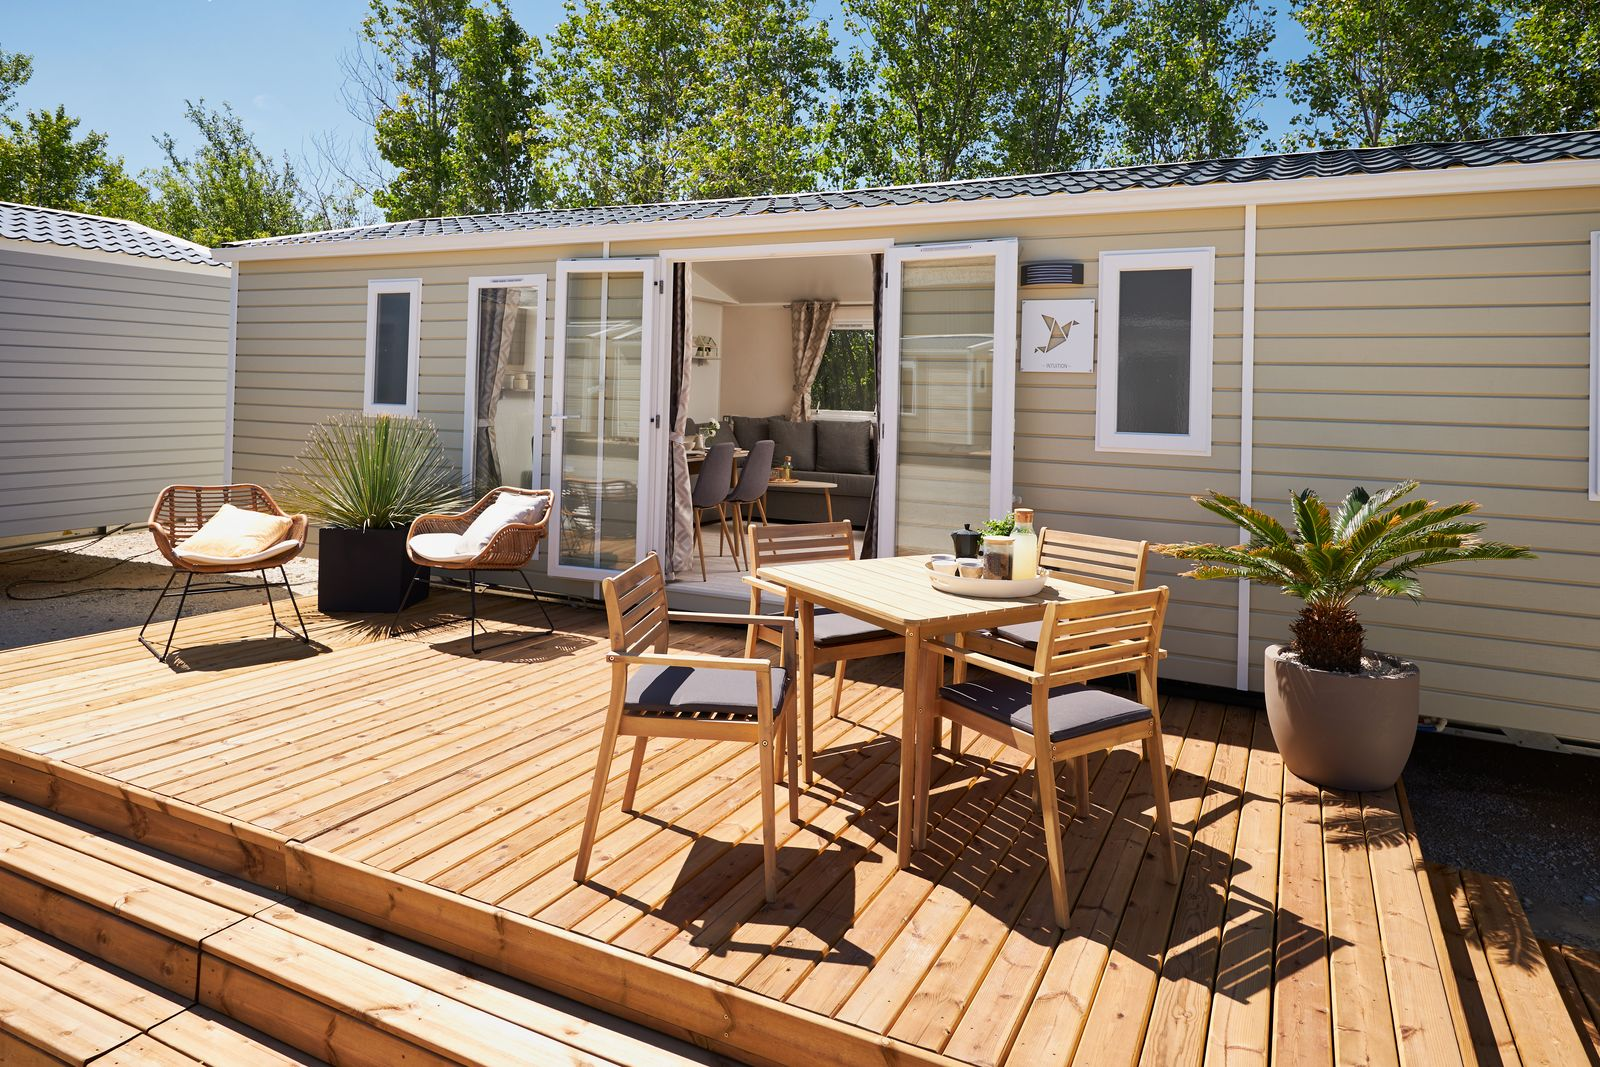 residences trigano terrasse pour mobil-home